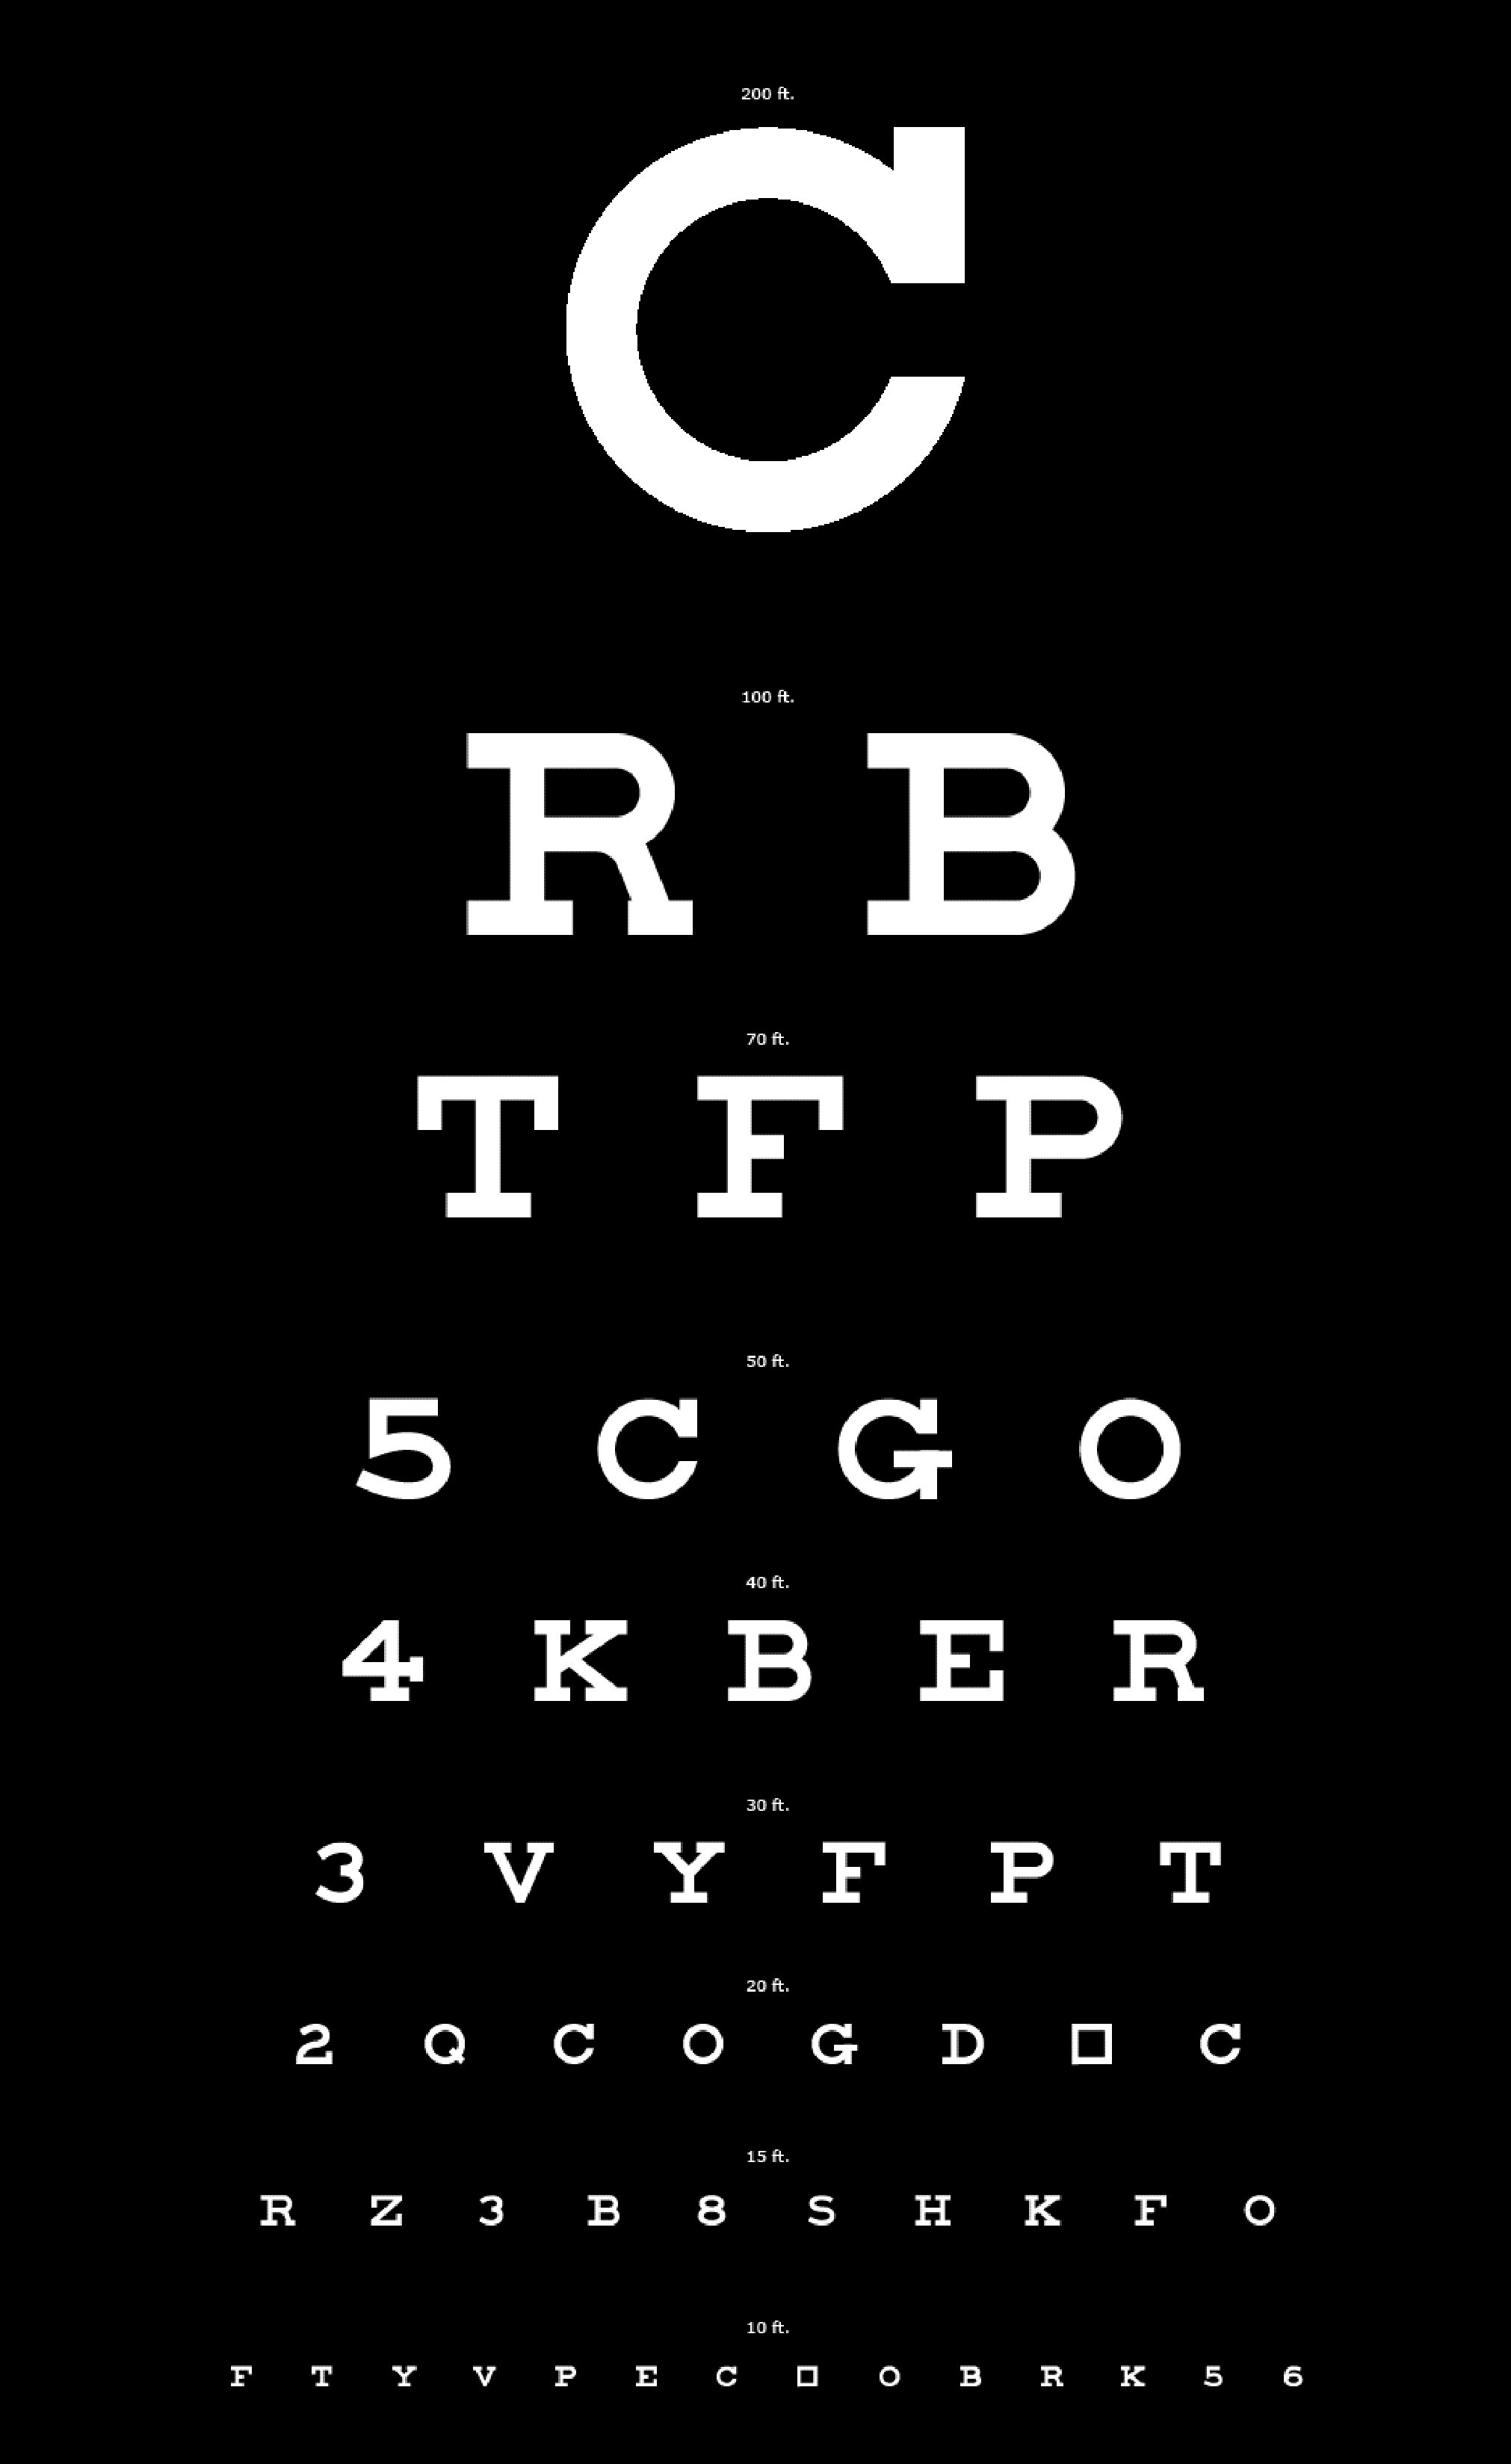 Eyecharts to test and improve close and distant eyesight eyechart white letters on black easy to see nvjuhfo Image collections